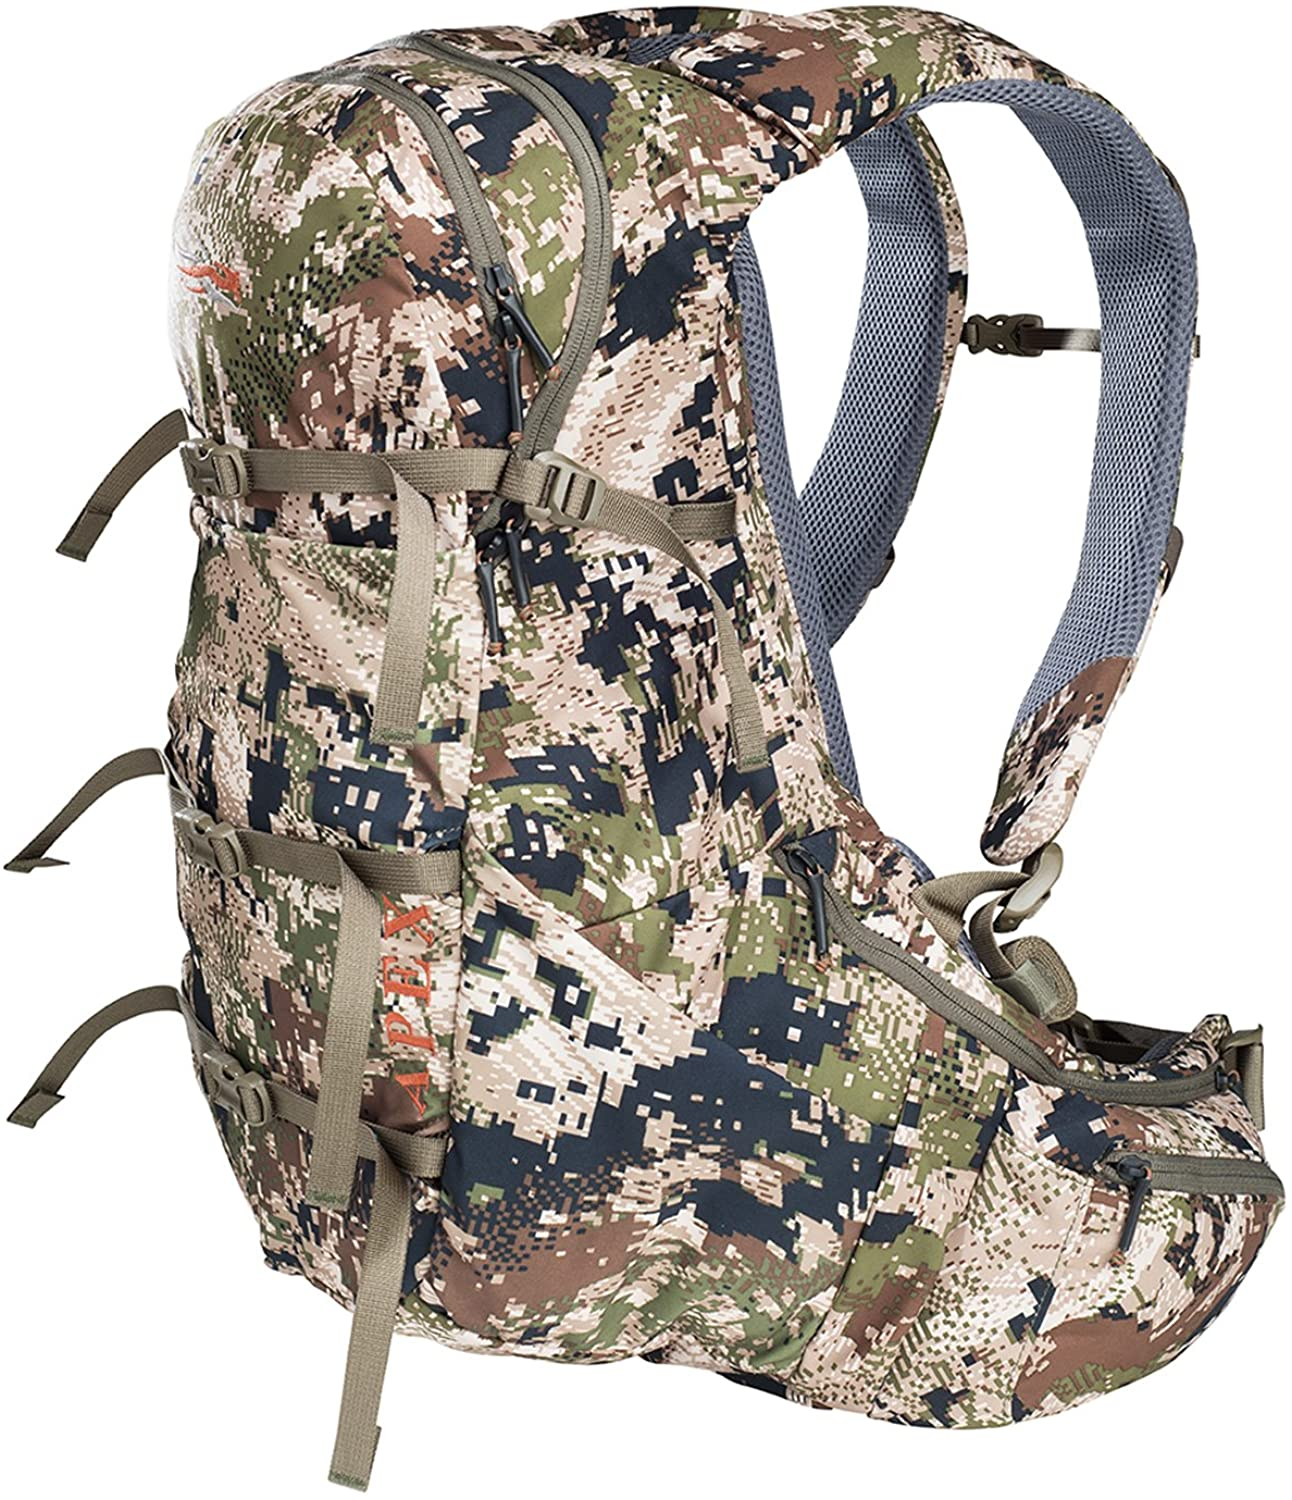 SITKA Gear Apex Pack Optifade Subalpine One Size Fits All